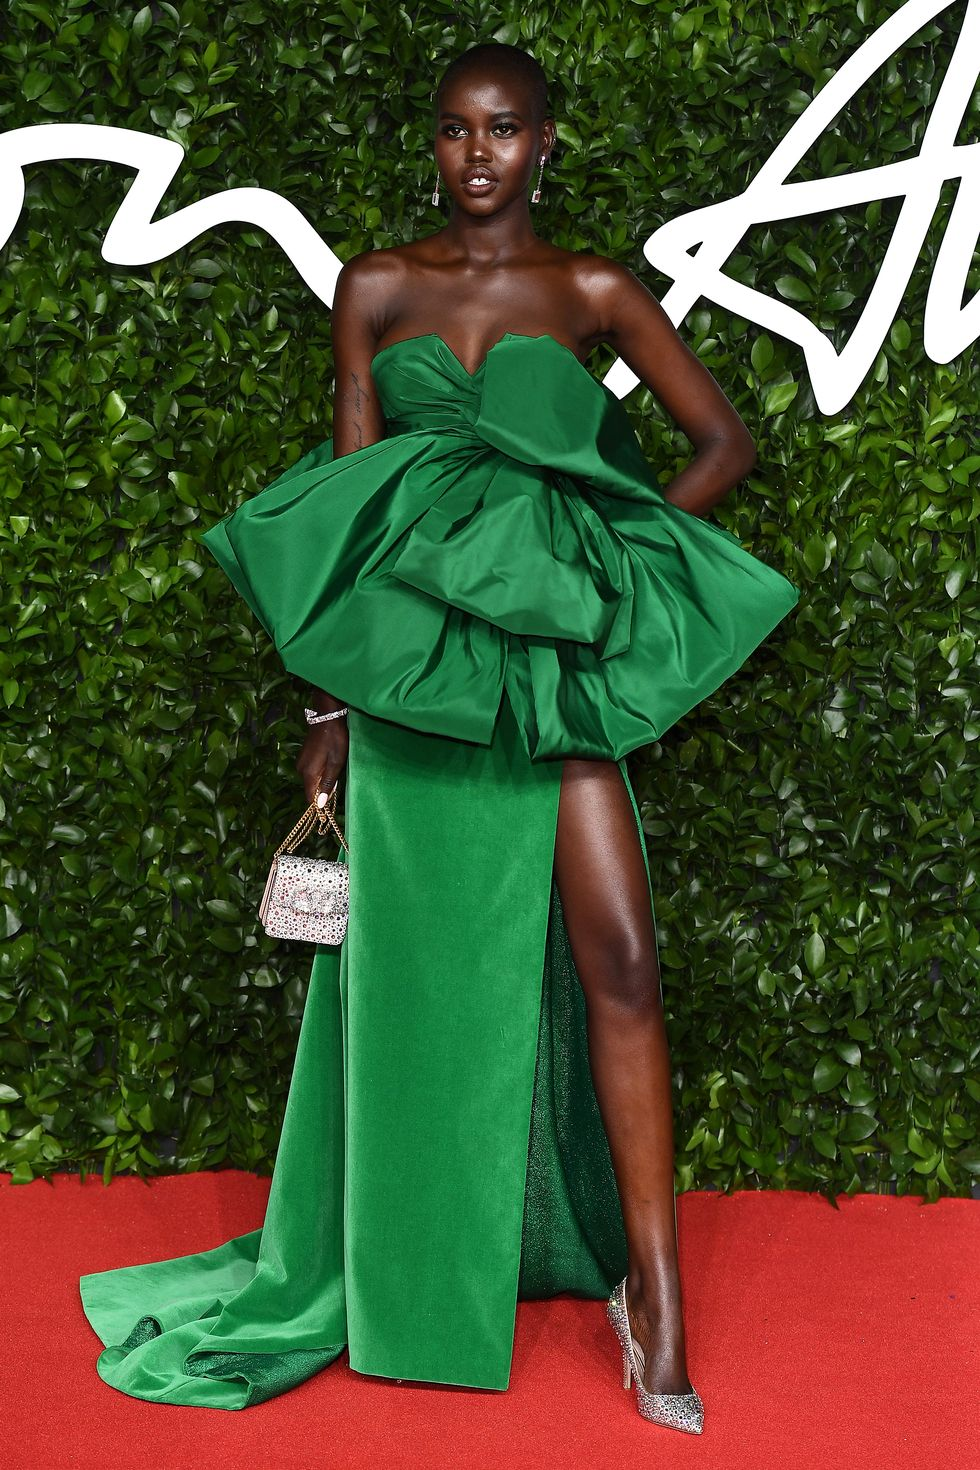 hbz-fashion-awards-2019-adut-akech-1575317045valentino